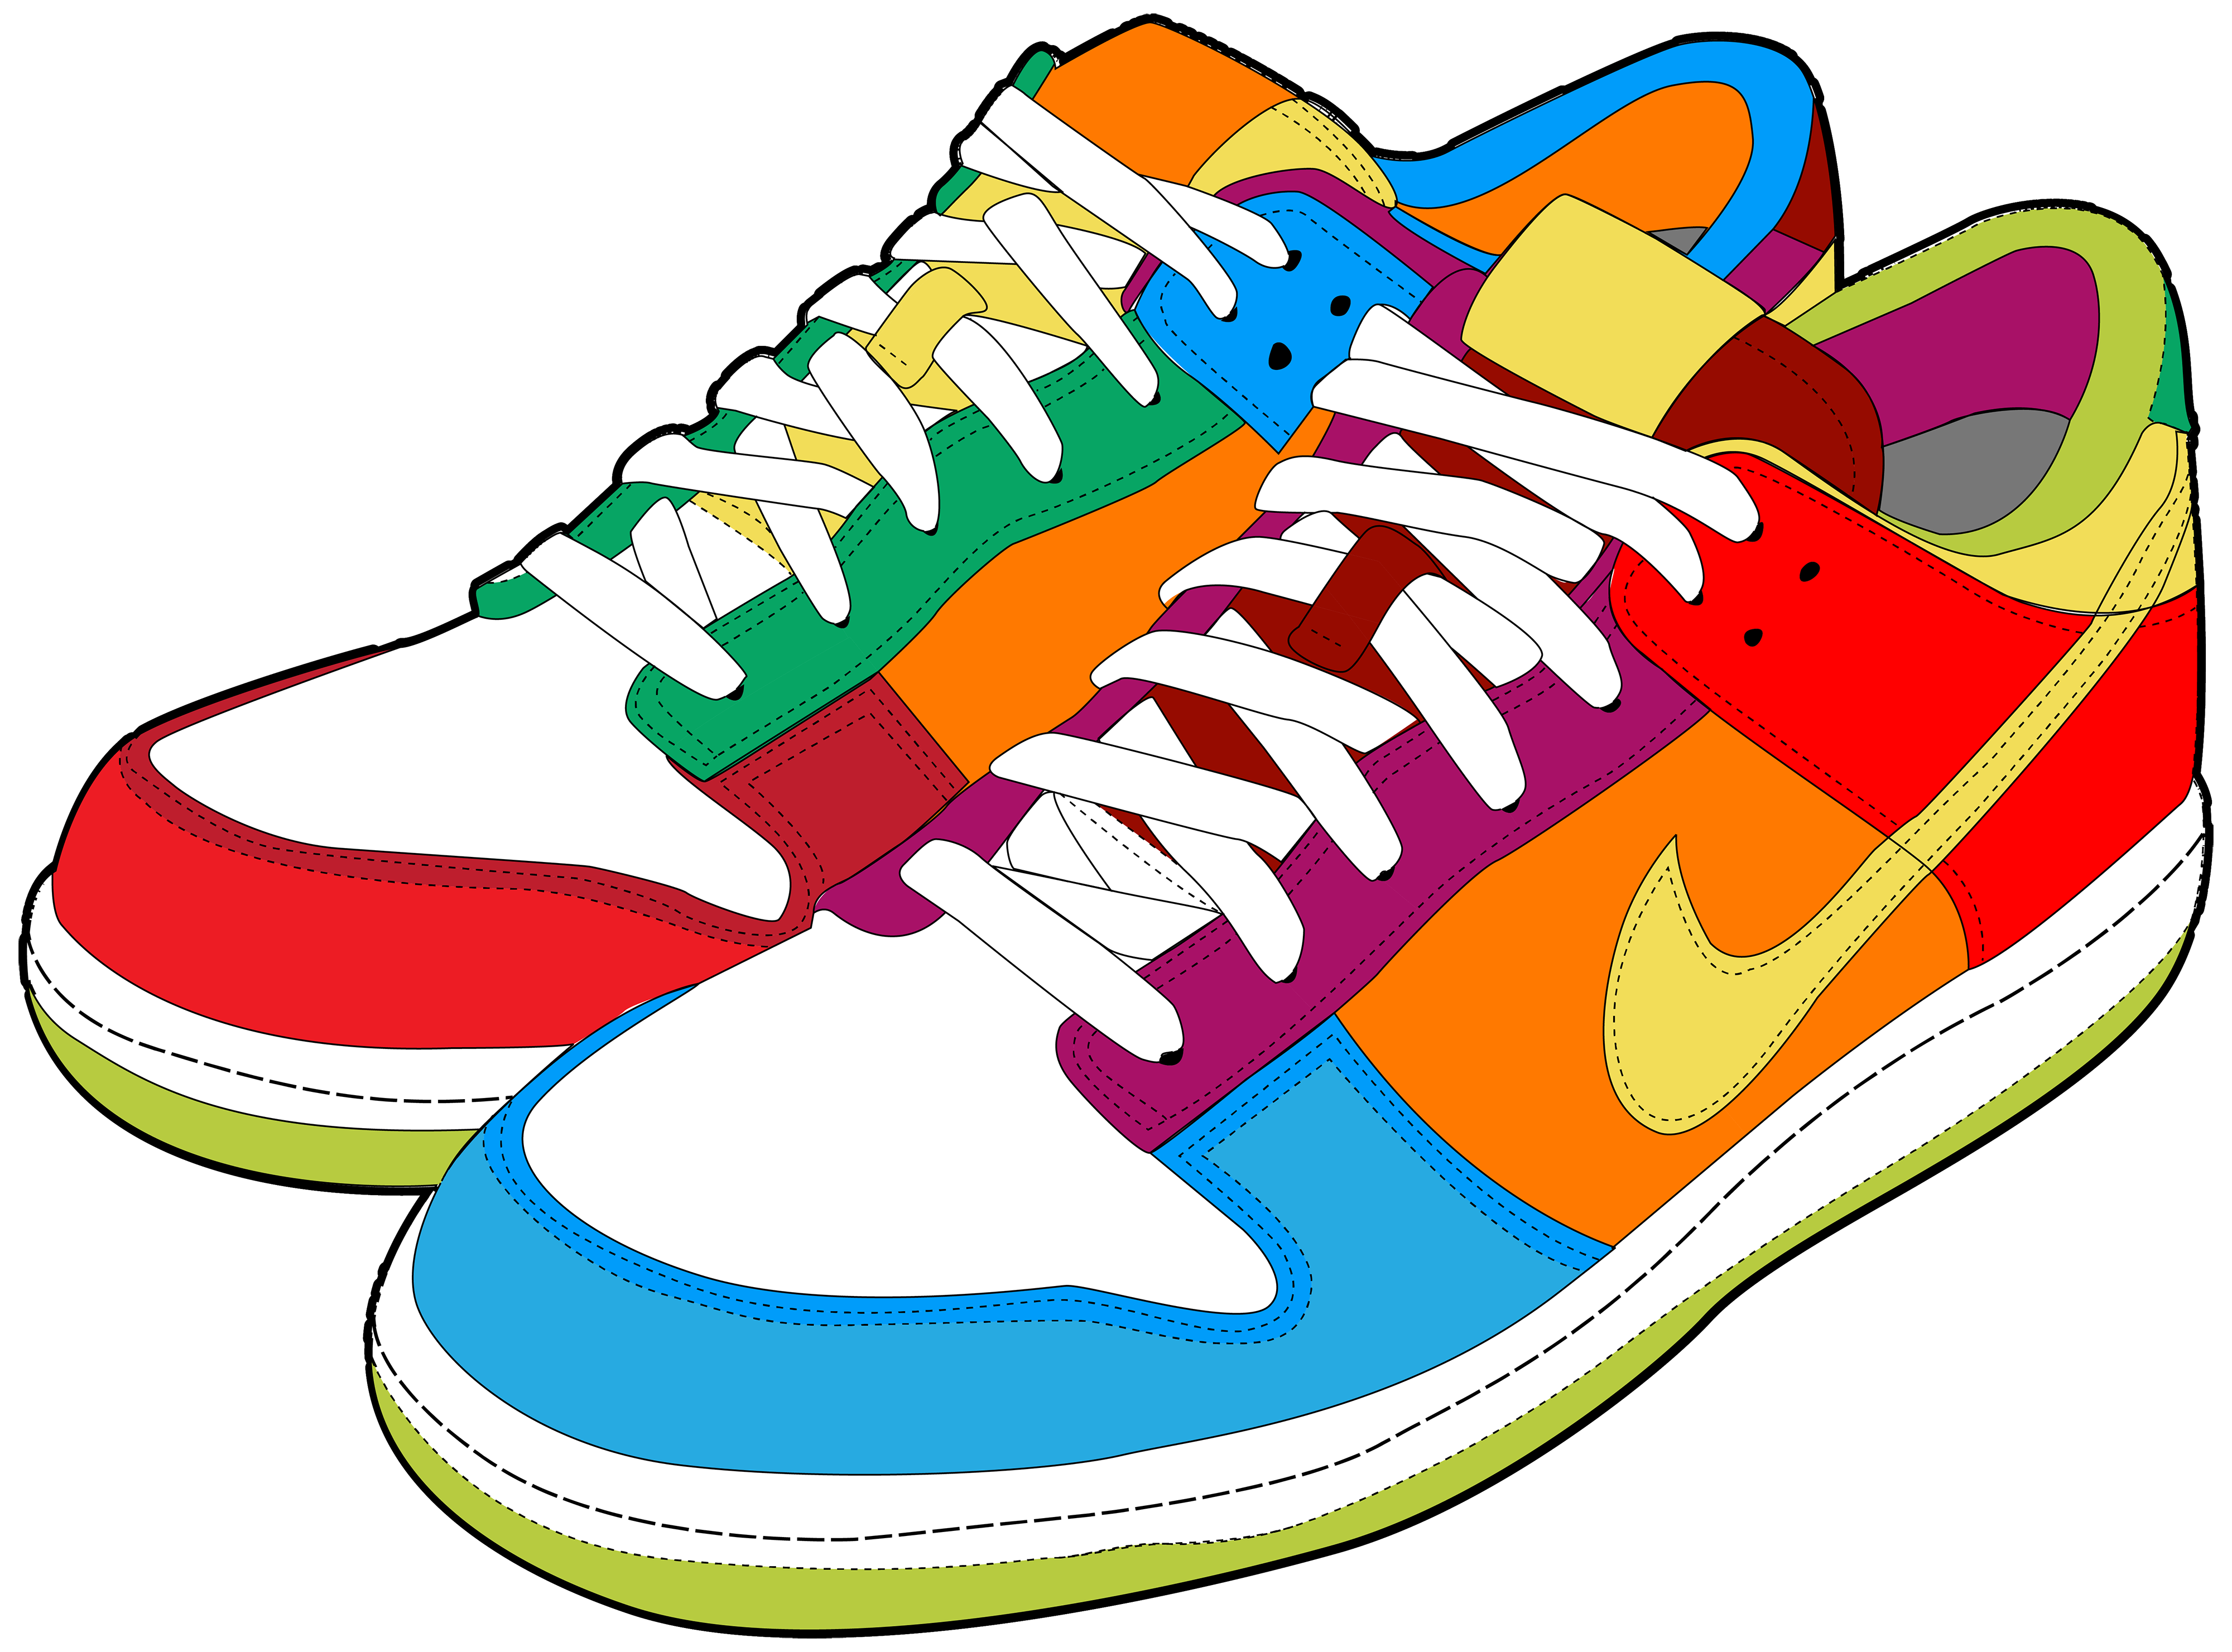 Art palette sneakers clipart vector transparent download Sneakers clipart - 78 transparent clip arts, images and pictures for ... vector transparent download